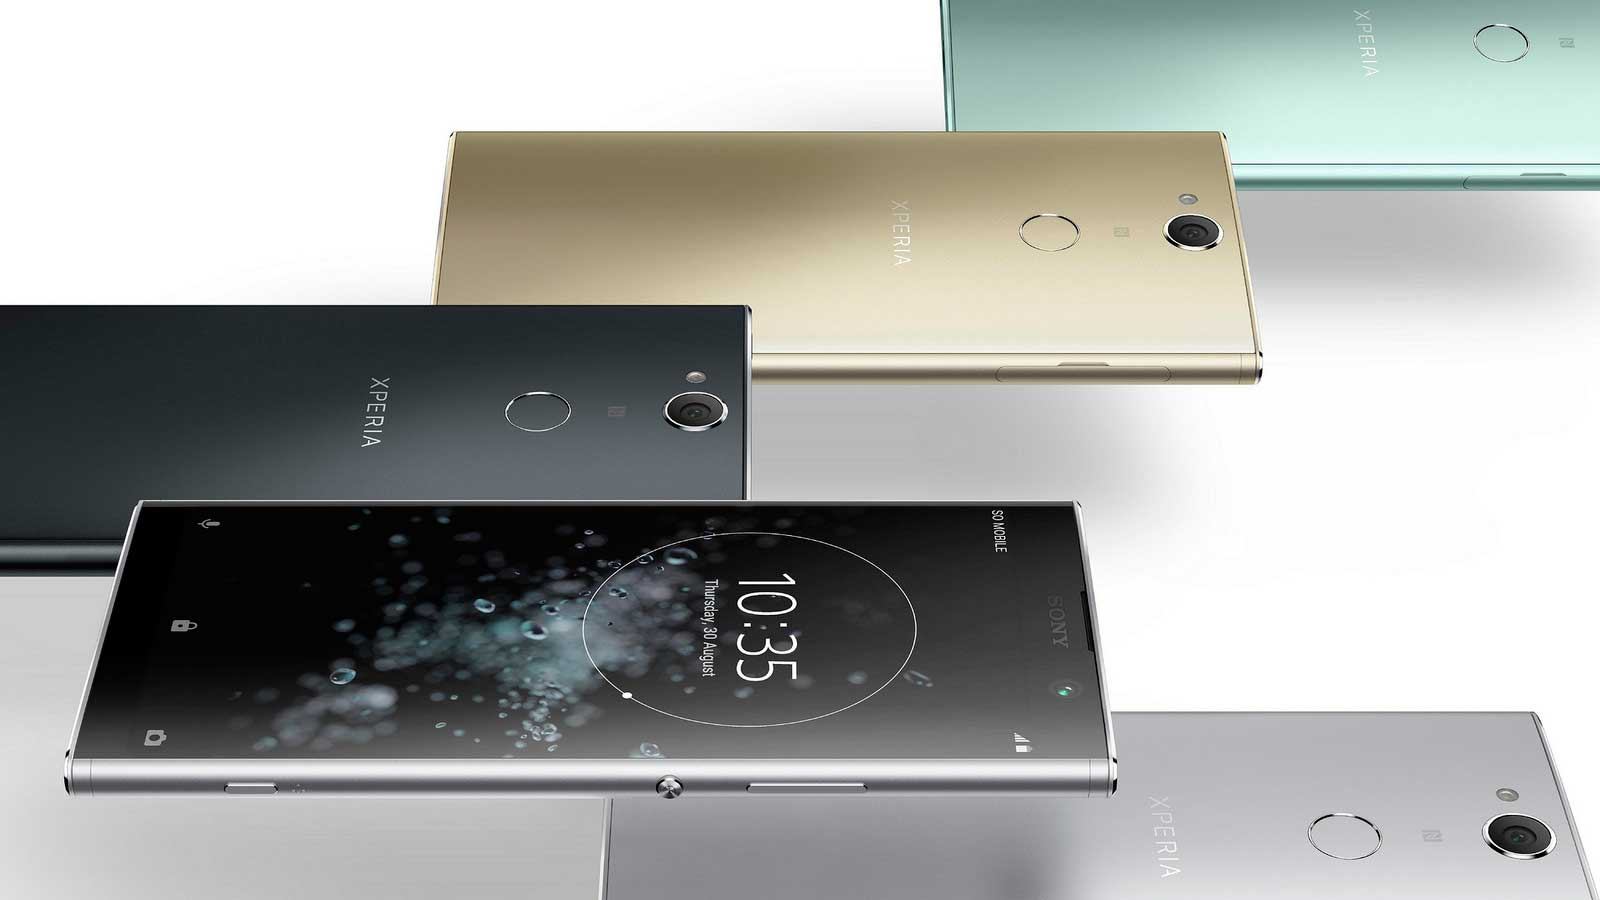 Sony Phone Vr Sony 39;s Latest Design Hits Mid Range Phones On The Xperia